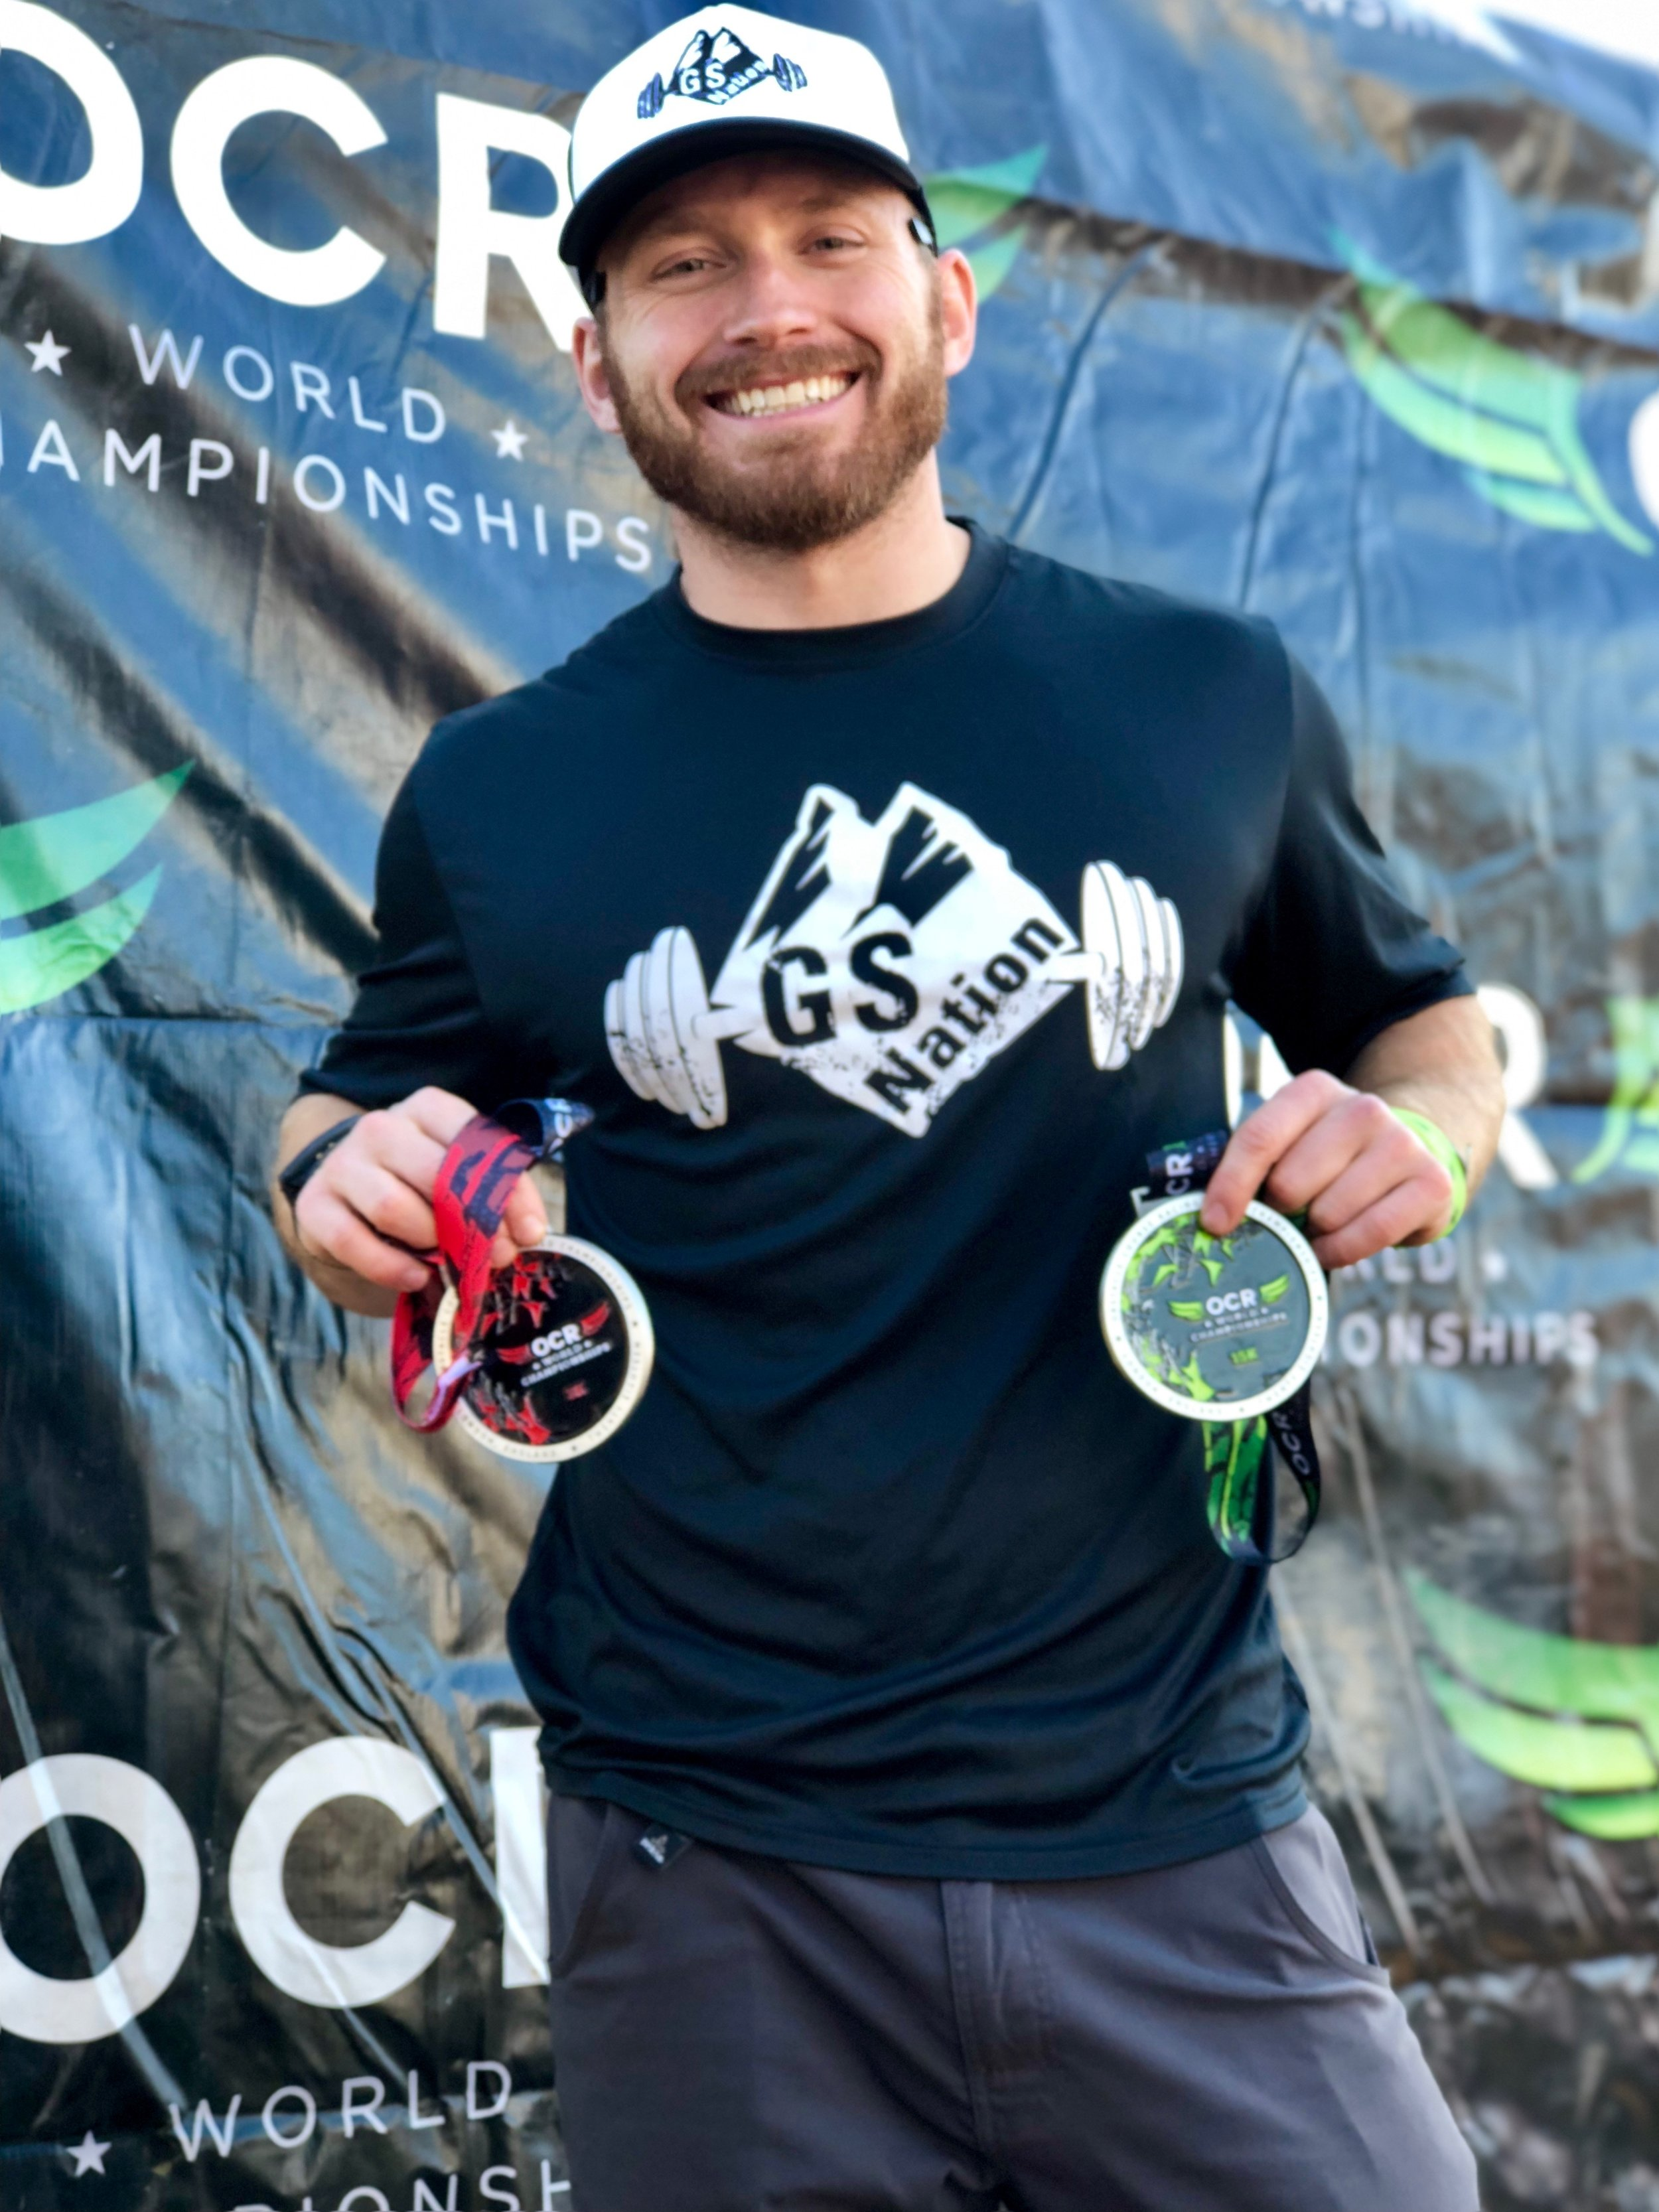 OCR Workshop  - Learn all things Obstacle Course Racing in this two hour workshop with 2018 World Championship competitor, Dave Robinson @getstrappedstaystrapped ⠀On June 22nd at 9am at Canoe Run Park, Coach Dave will be breaking down the obstacles, discussing course strategy, race day nutrition, training, tapering, and more! There will also be a Q&A at the end, so come with questions! ⠀⠀There will be hands on demonstrations and instruction, so dress in your active wear and bring water. Limited spots available. $29 for non-members. $19 for members.